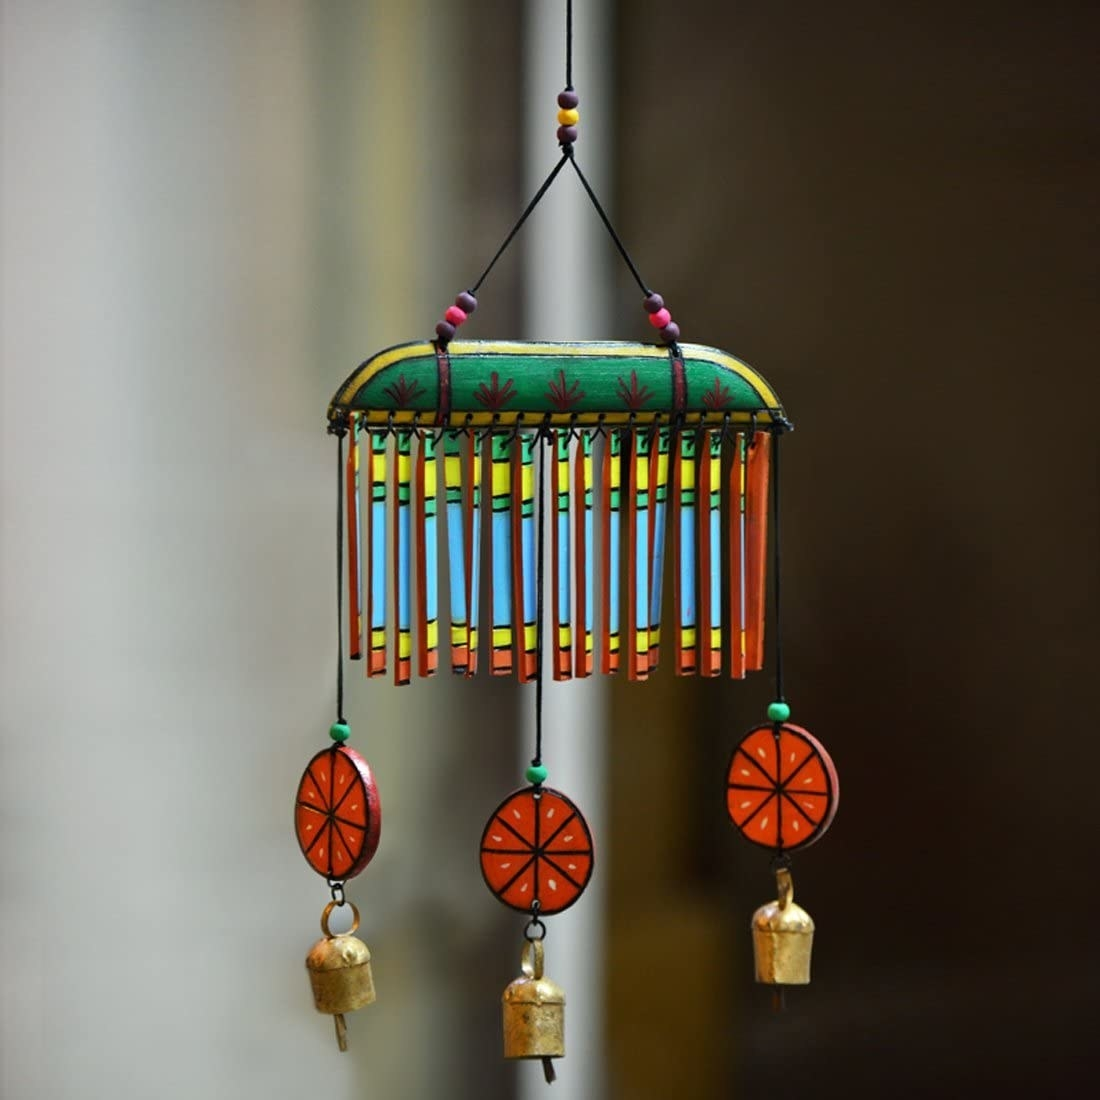 A wind chime set with wooden orange slices and bells